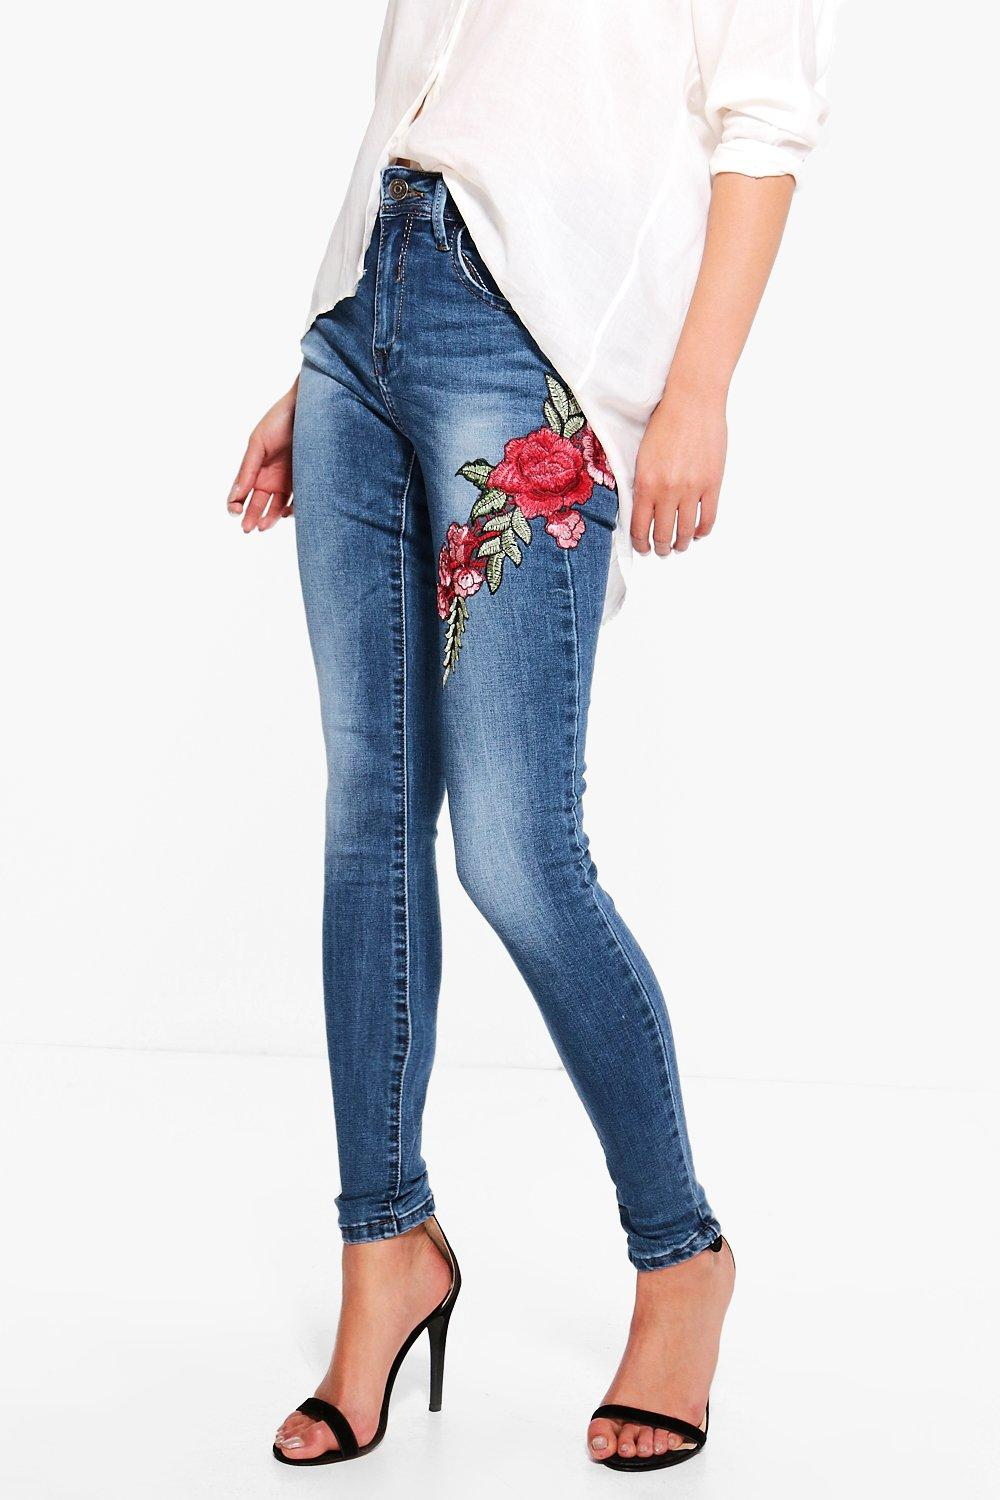 Helen Embroidered Skinny Jeans At Boohoo